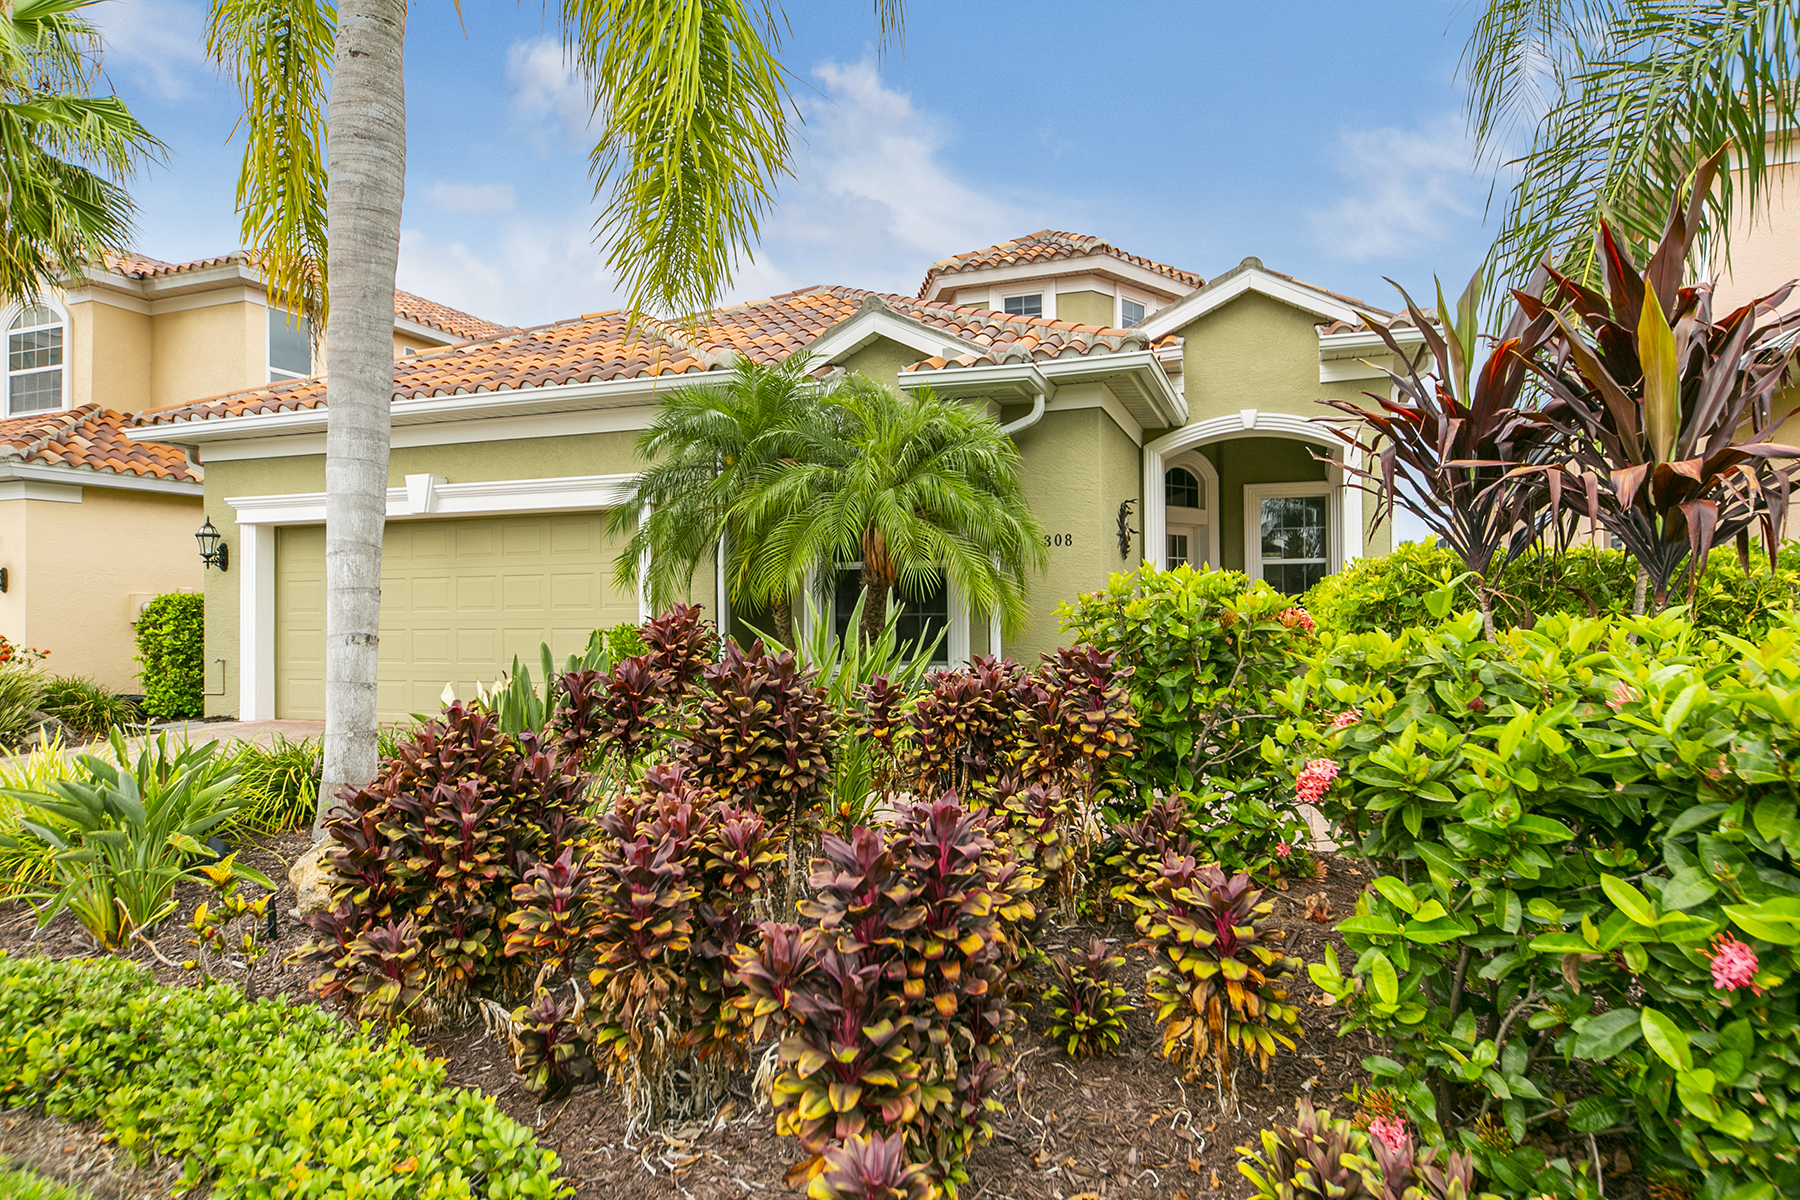 Single Family Homes for Sale at NORTH SHORE AT RIVIERA DUNES 308 9th Ave E Palmetto, Florida 34221 United States